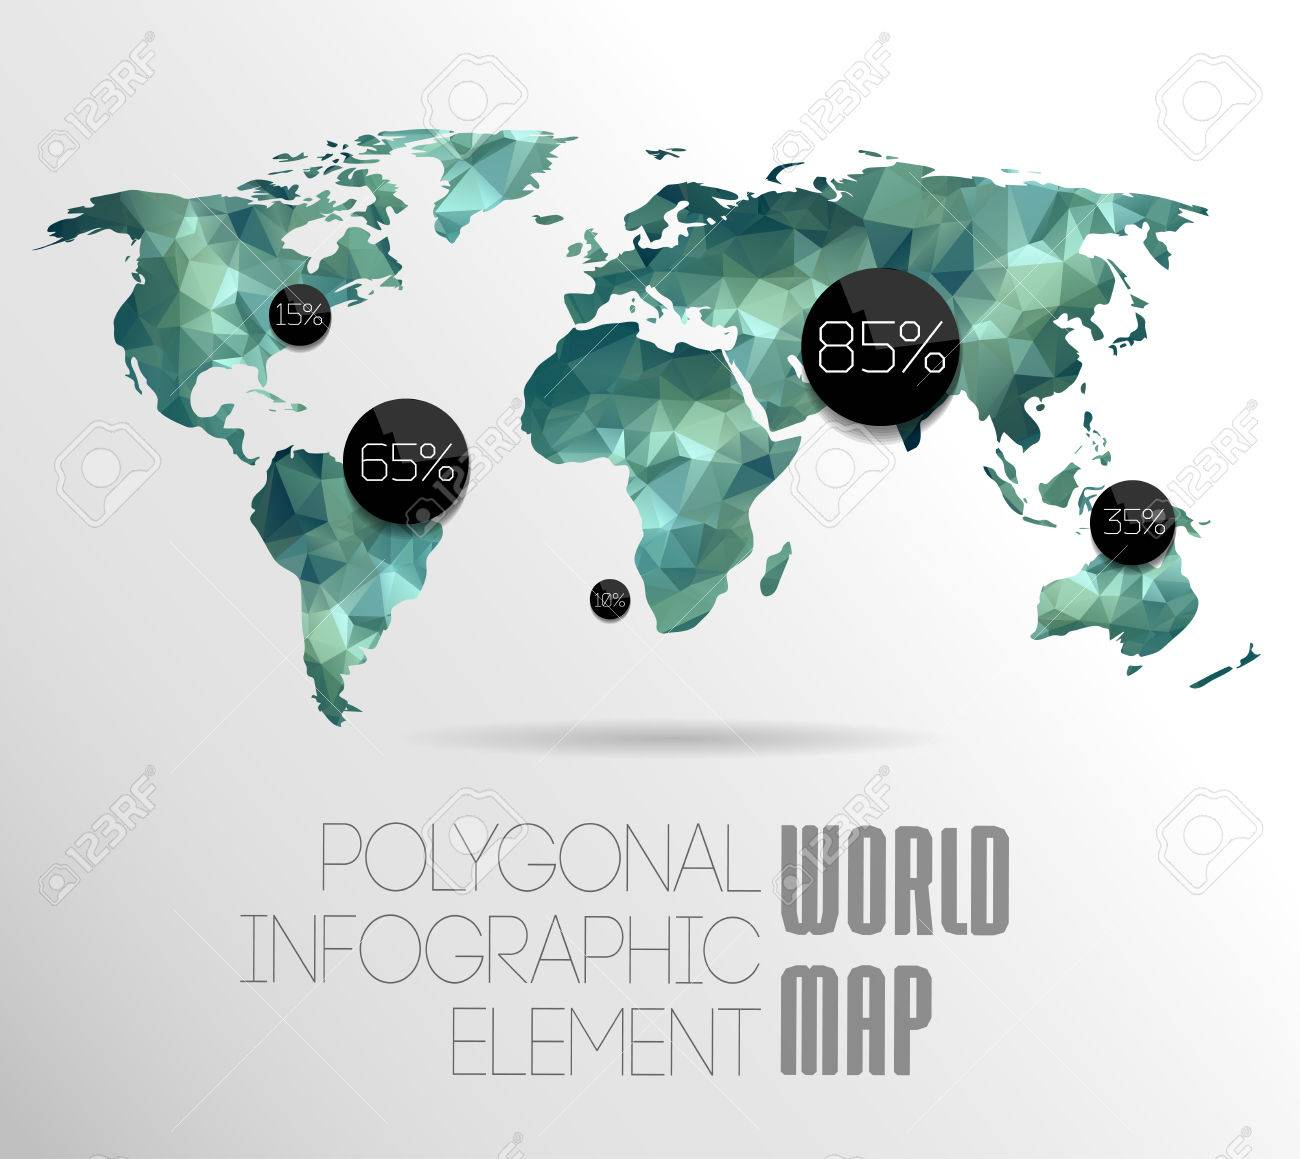 Polygonal world map and information graphics world map and polygonal world map and information graphics world map and typography stock vector 25827543 gumiabroncs Image collections